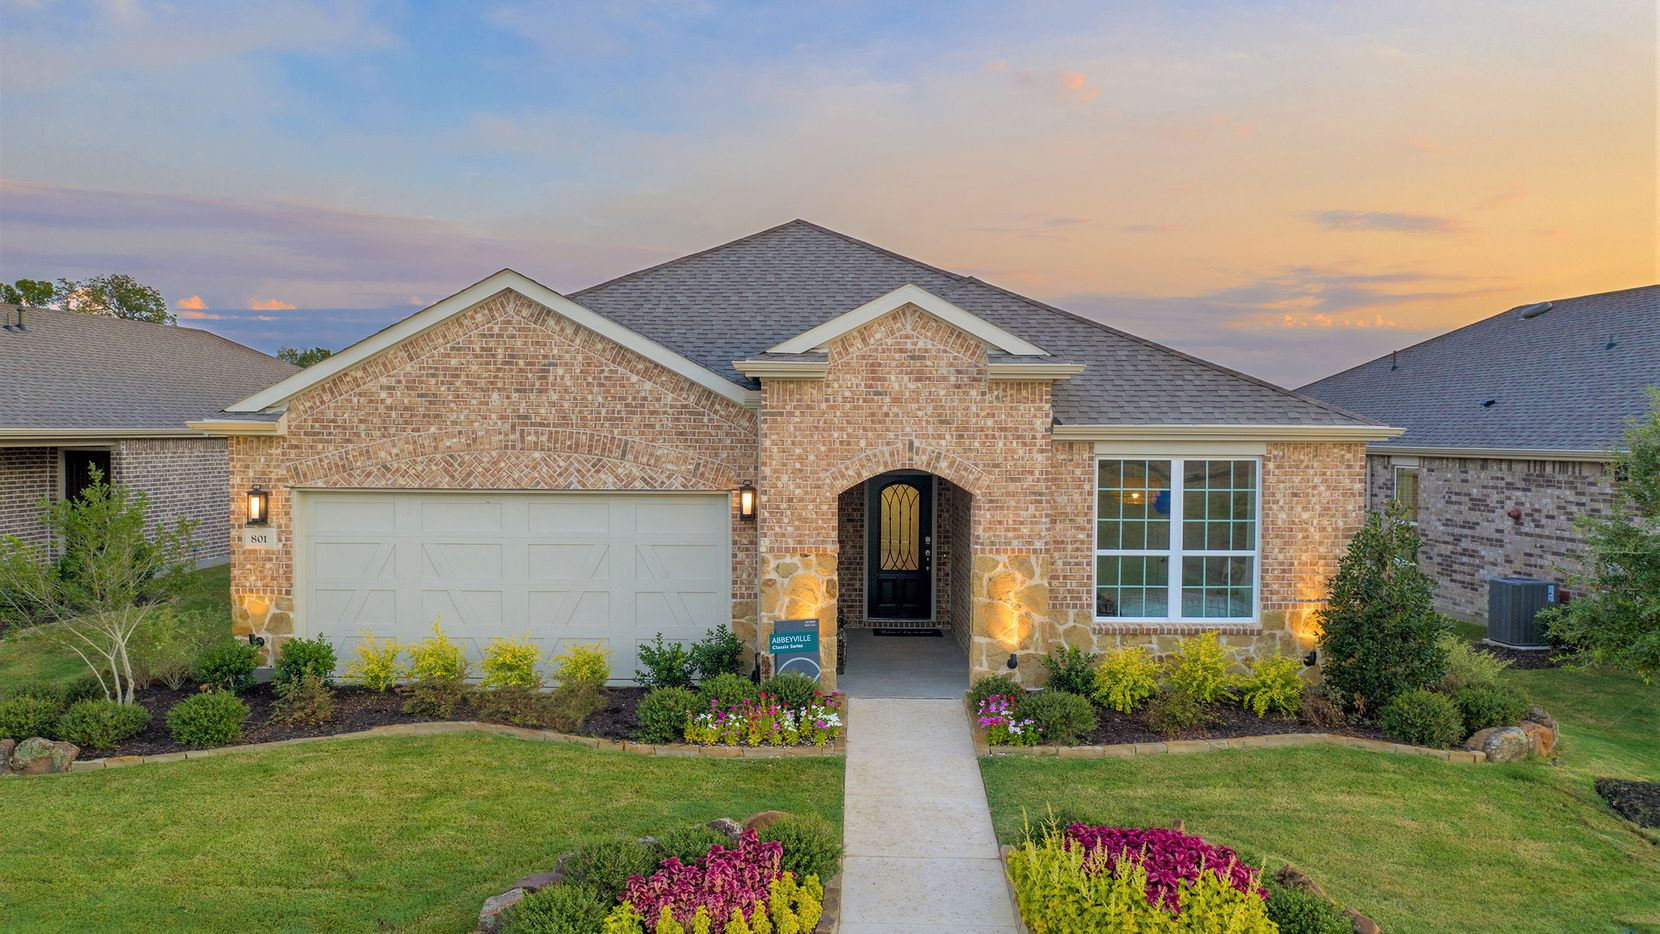 Del Webb's three Dallas-area communities offer social activities and designs for active adults ages 55 and better.